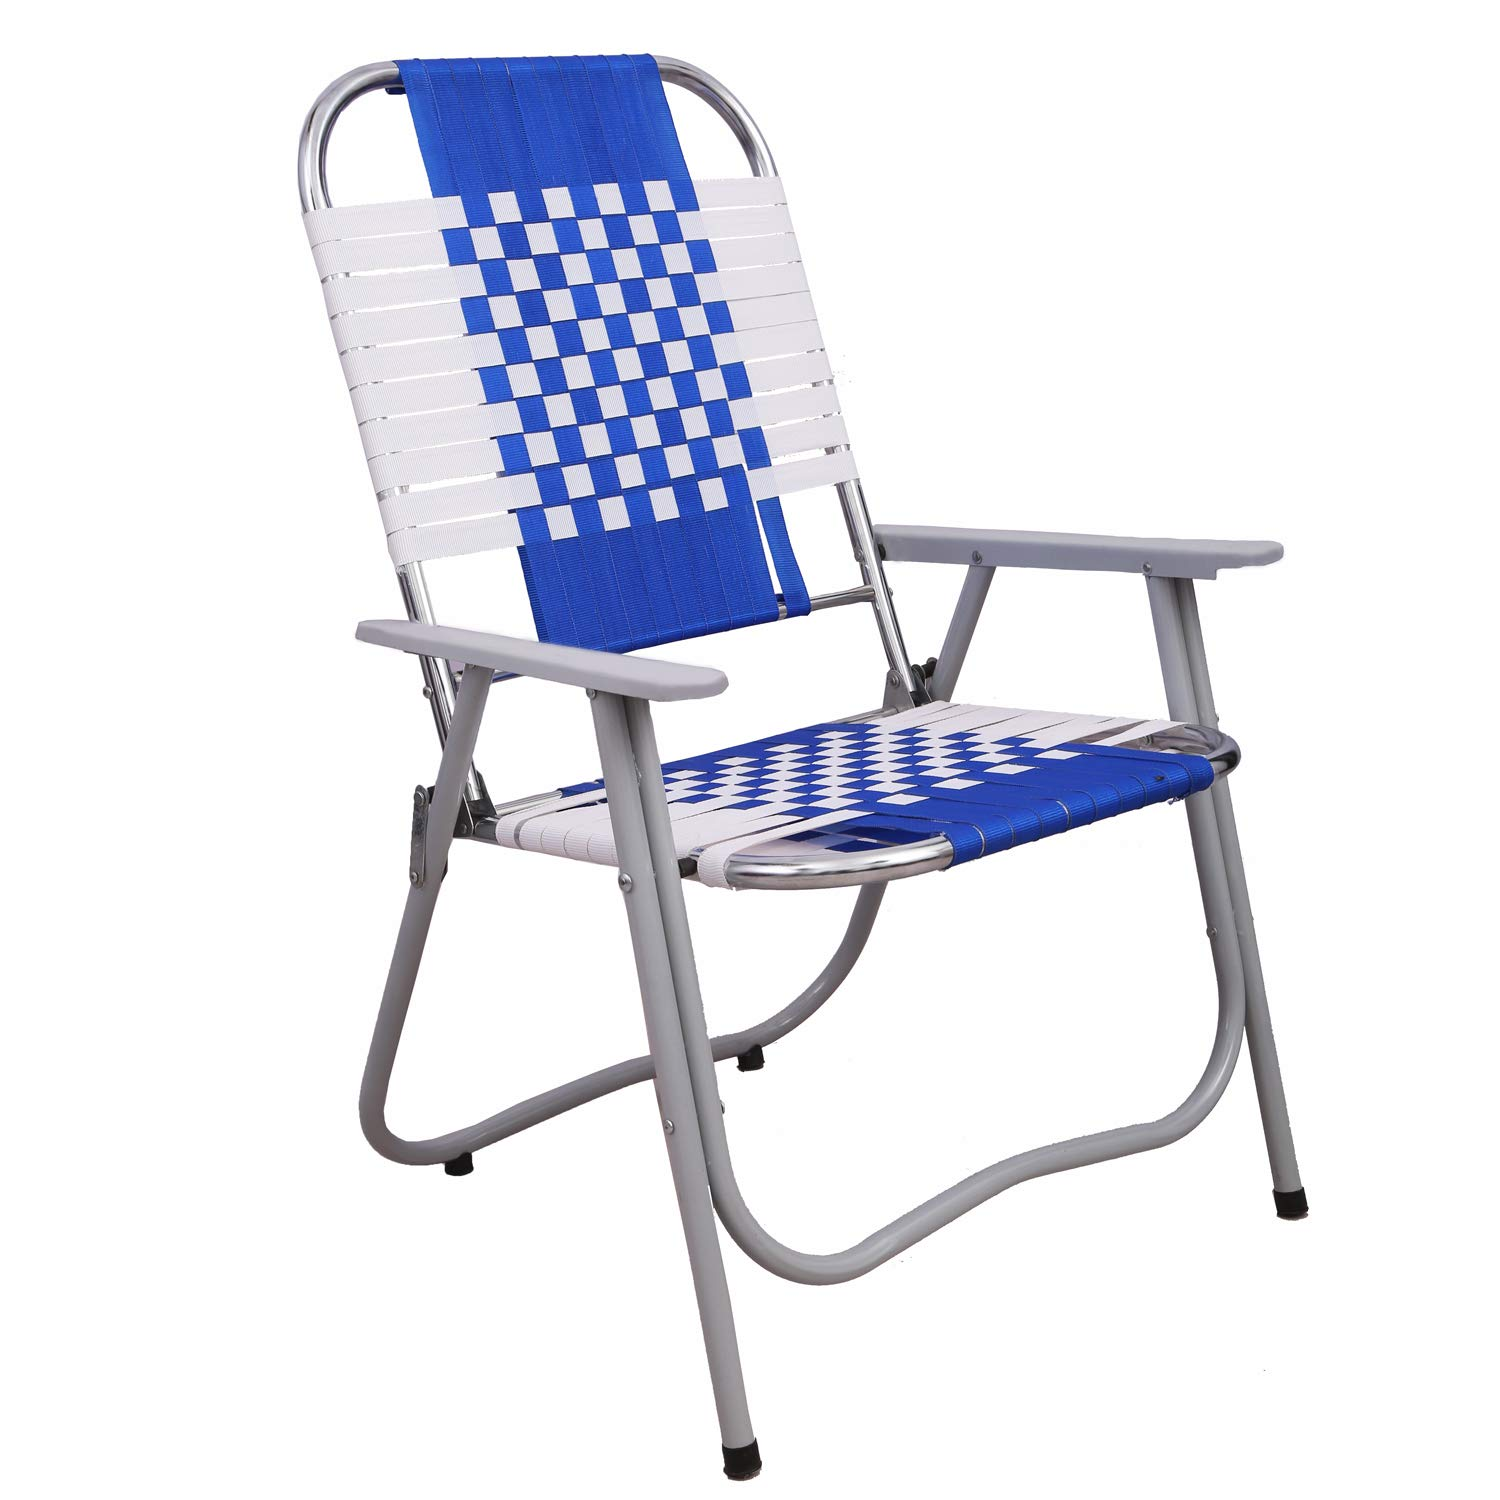 South Whales Portable Folding Chair With Arm Rest Stainless Steel Set Of 1 Blue Amazon In Home Kitchen